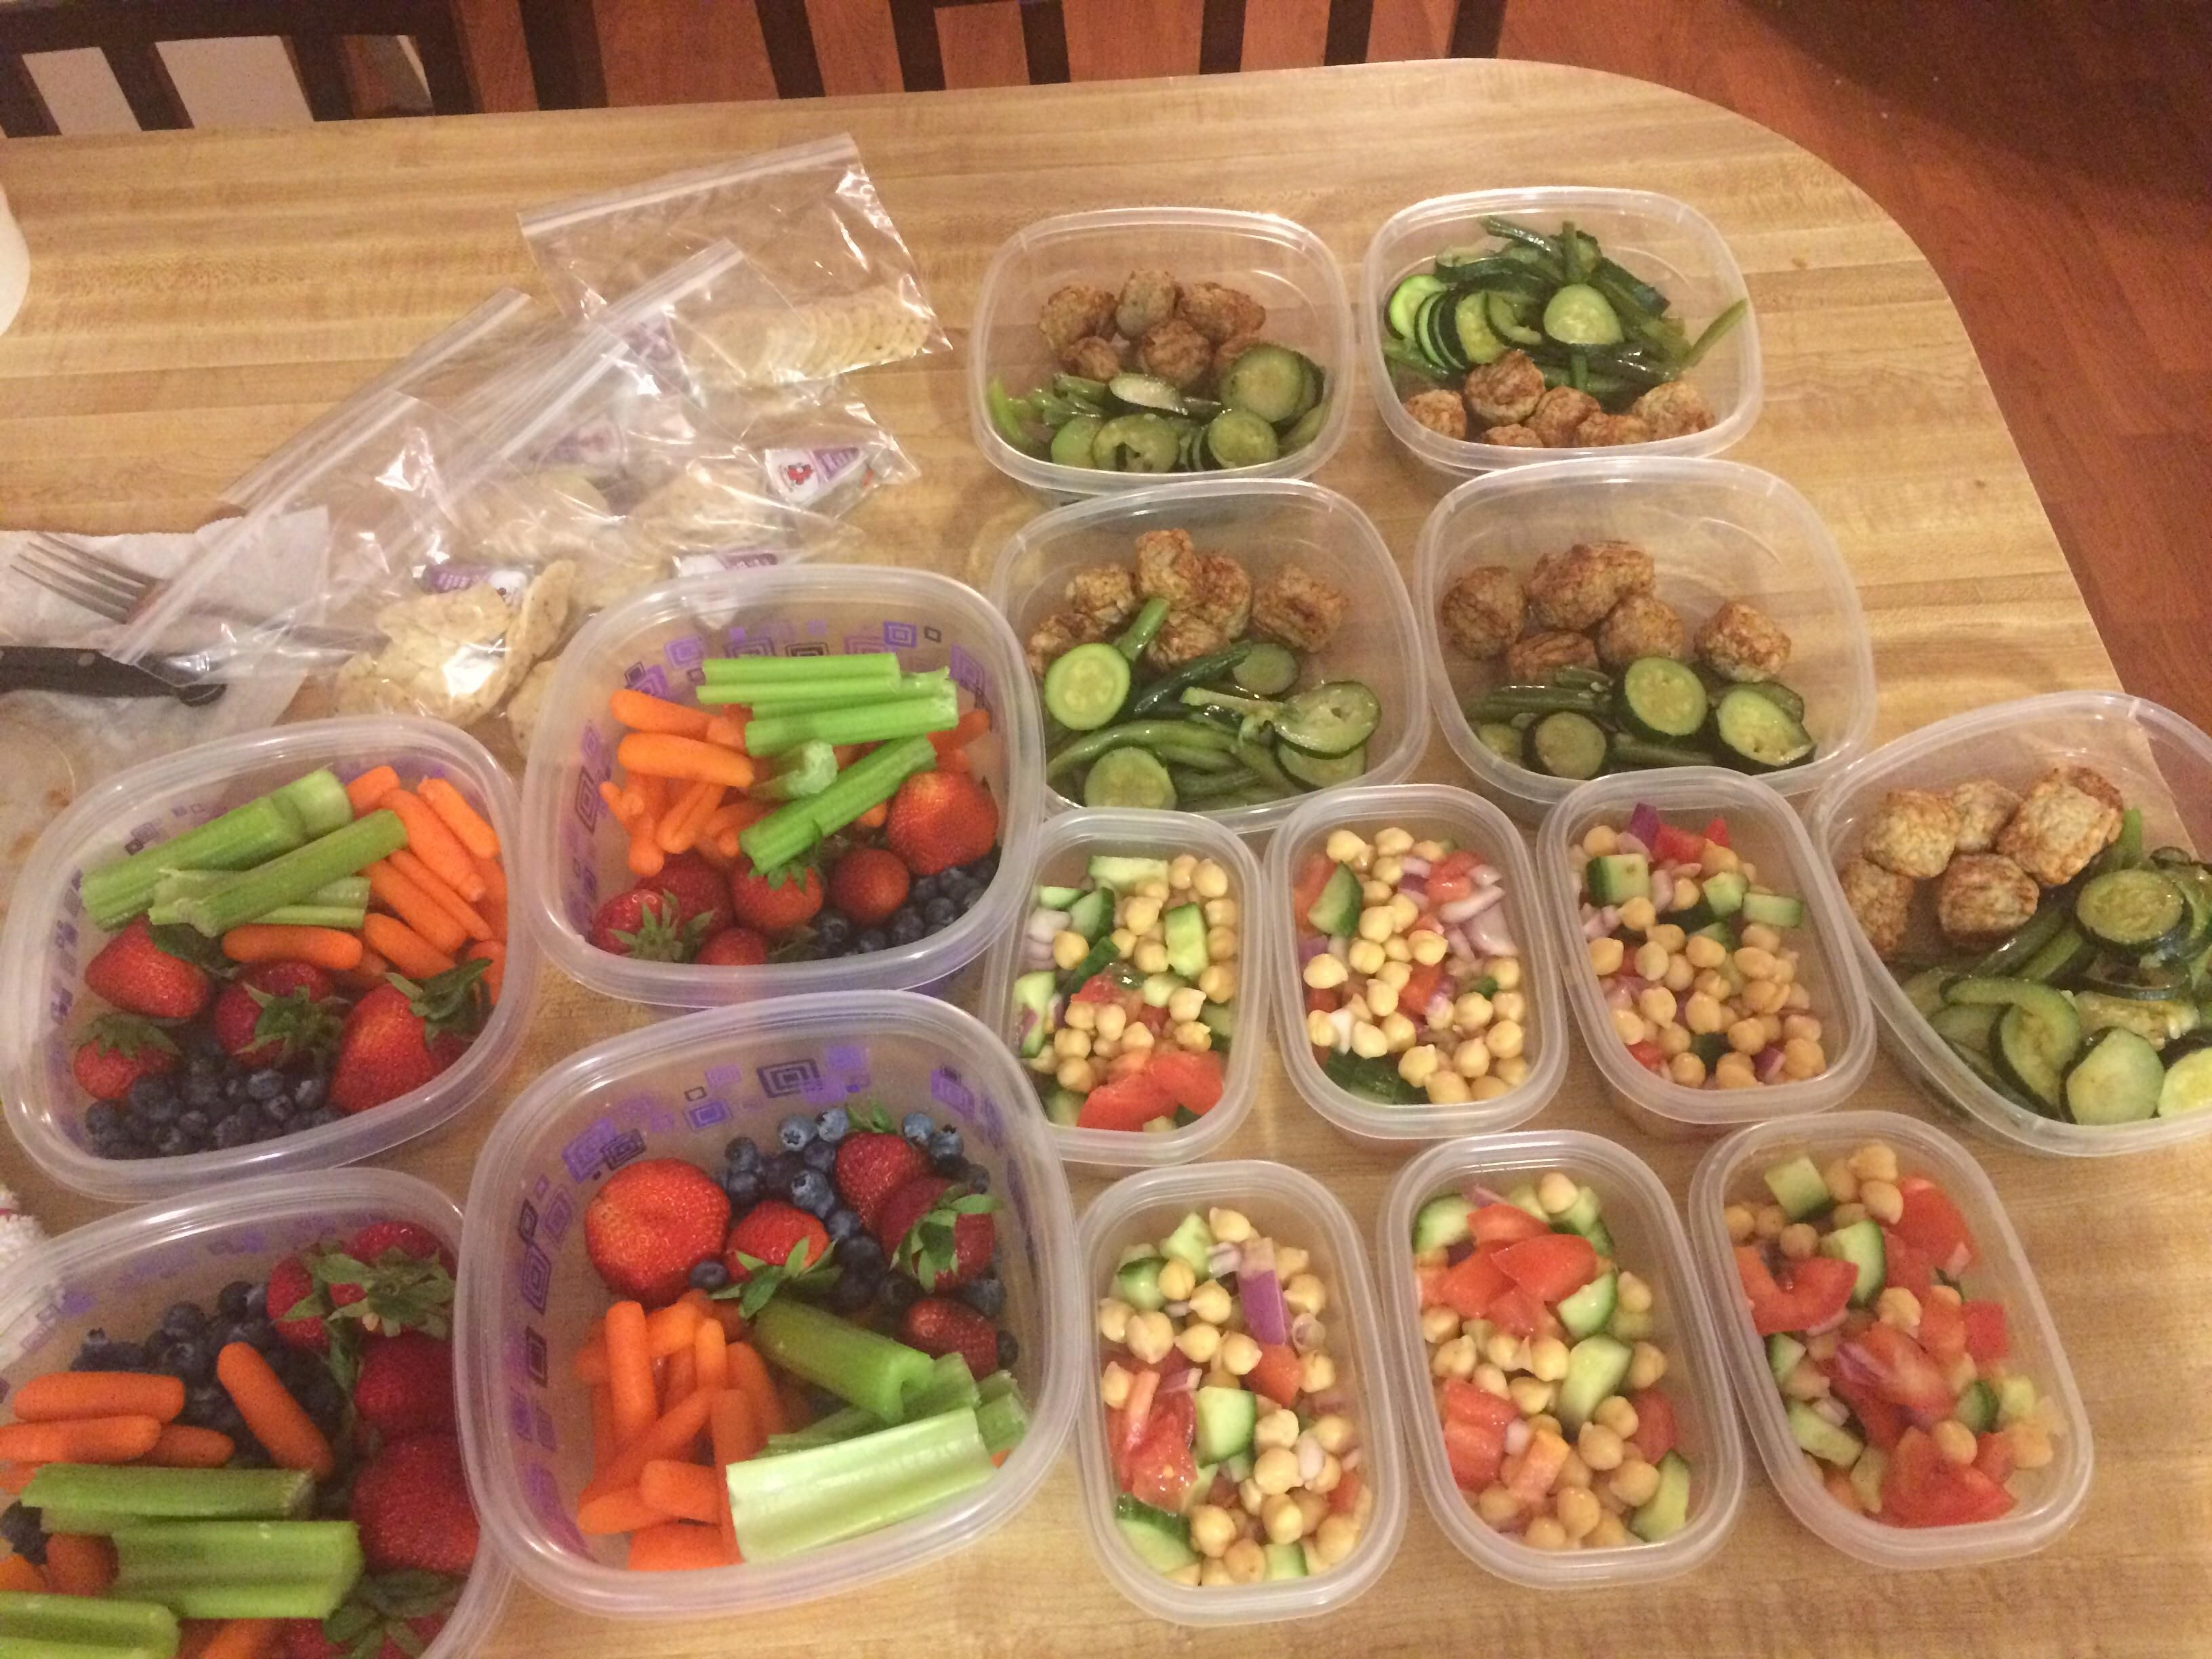 Completed my first meal prep! My week is suddenly looking a lot more convenient! Breakfast is special k almond milk lunch is chickpea salad snacks are fruit n veggiesgluten free almond crackers and laughing cow cheese dinner is turkey meatballs with zucchini and green beans. 1147 cal per day. #mealprepping #OneSimpleChange #mealprep #healthy #mealplanning #healthyliving #food #weightloss #sunday